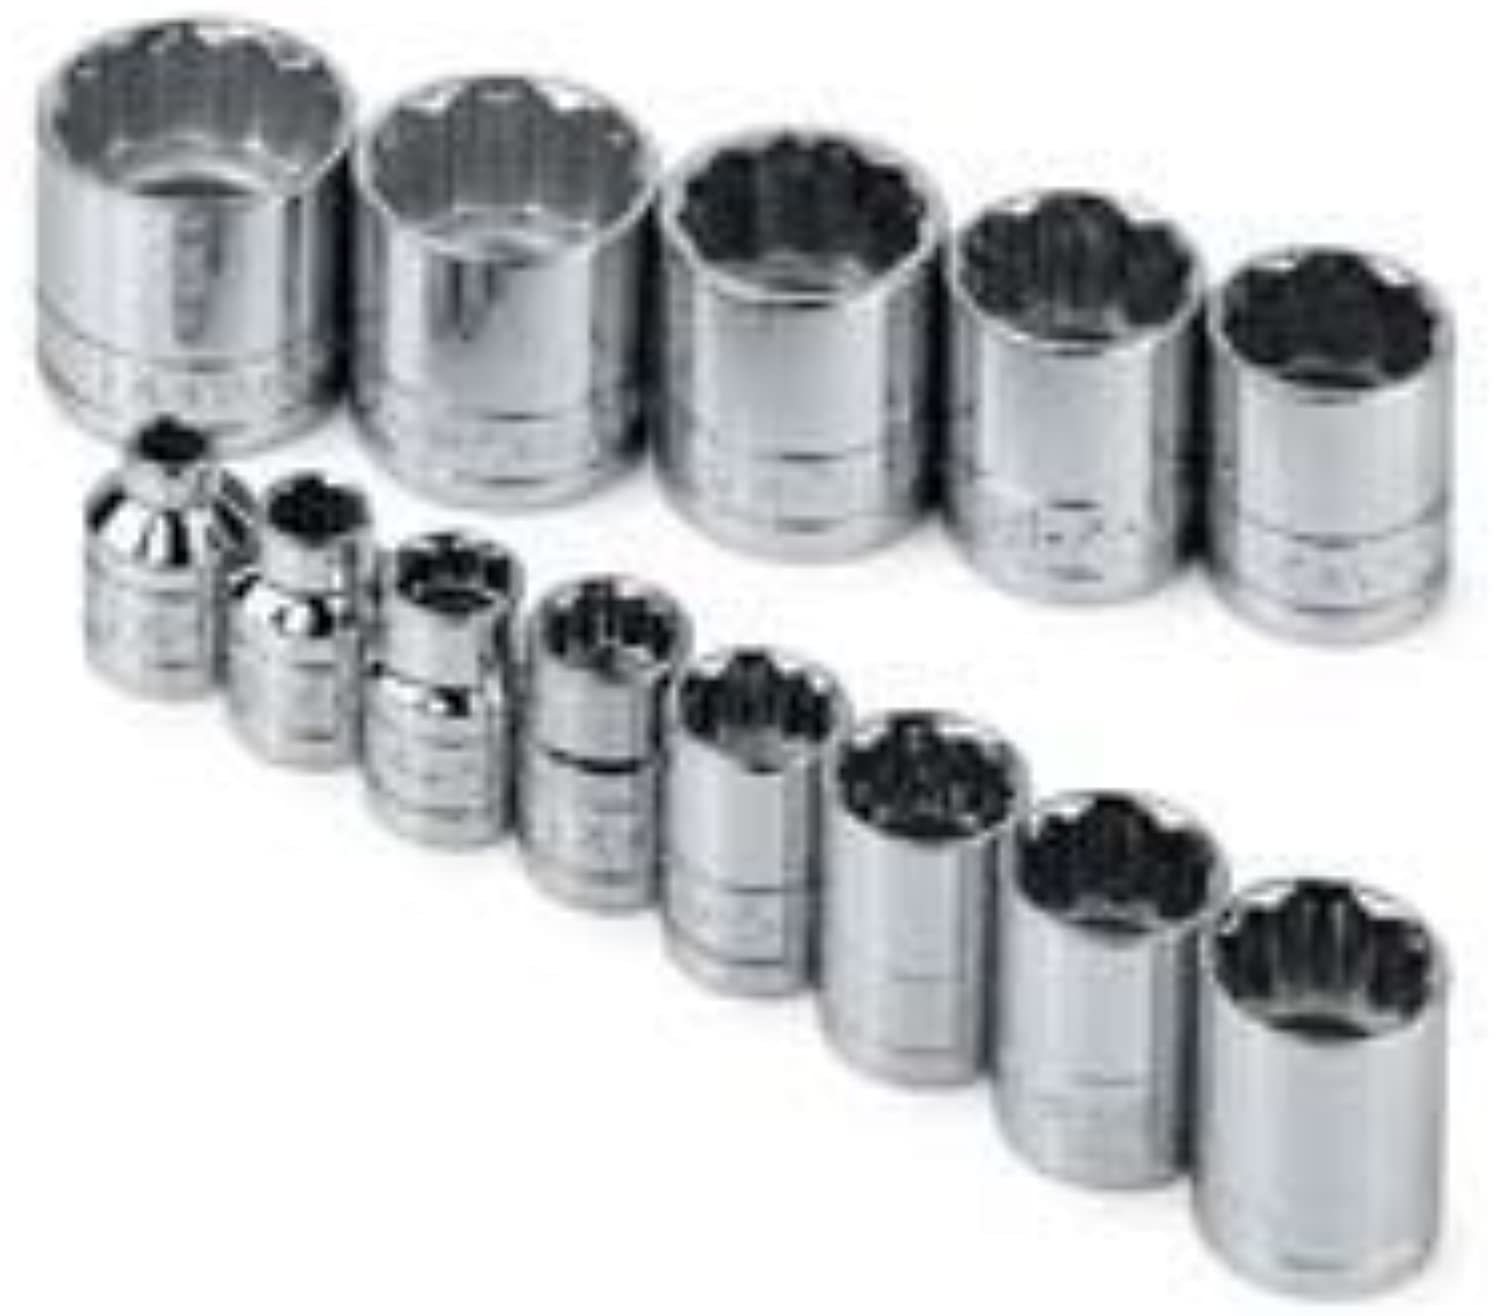 SK Hand Tools 4653 13-Piece 3 8-Inch Drive 12 Point Point Point Standard Fractional Socket Set by SK Hand Tools B0186MC4TS | Elegante und robuste Verpackung  c42d96